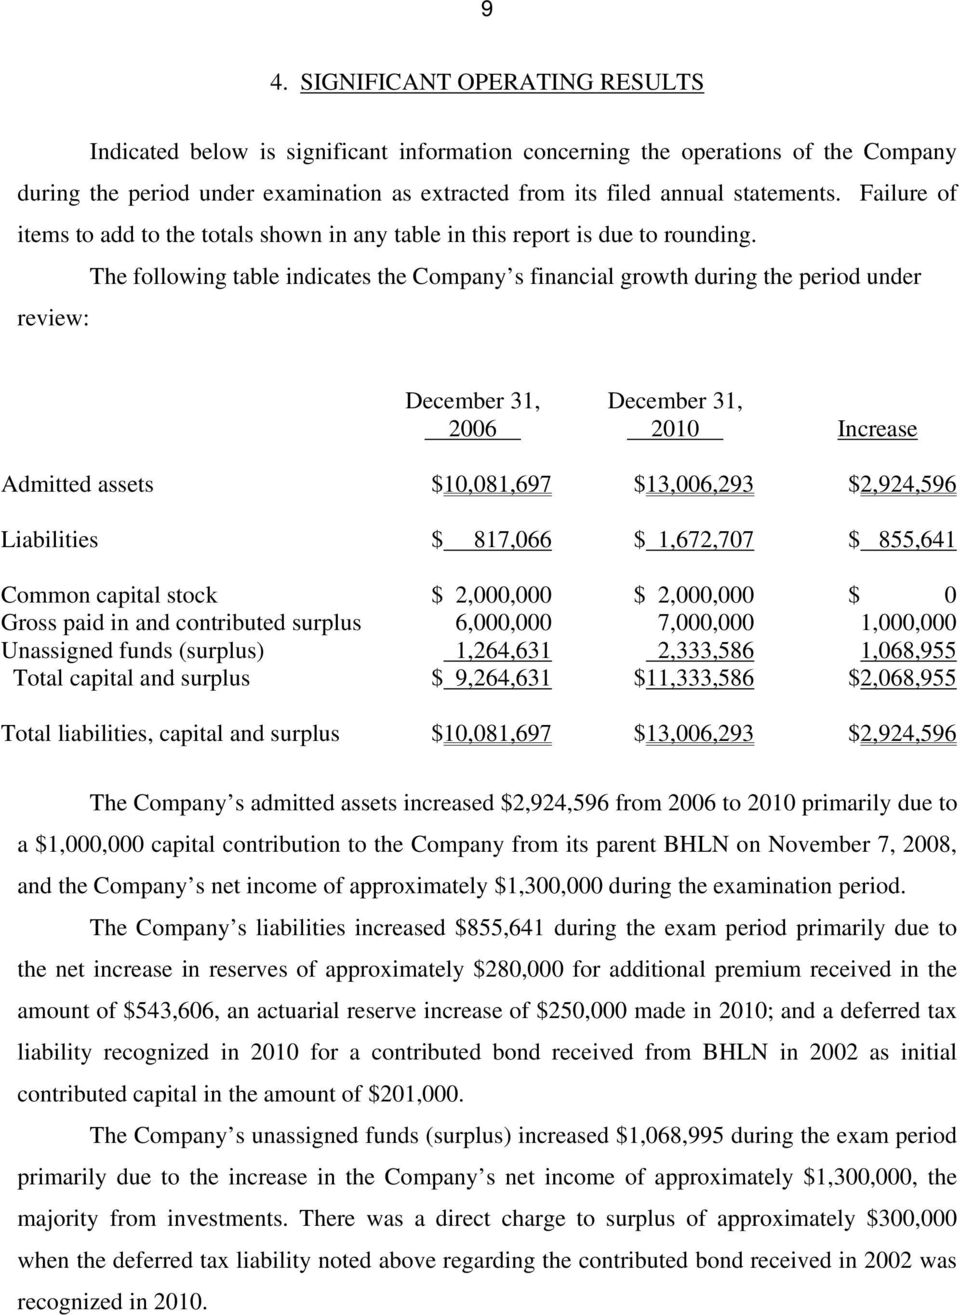 The following table indicates the Company s financial growth during the period under review: December 31, 2006 December 31, 2010 Increase Admitted assets $10,081,697 $13,006,293 $2,924,596